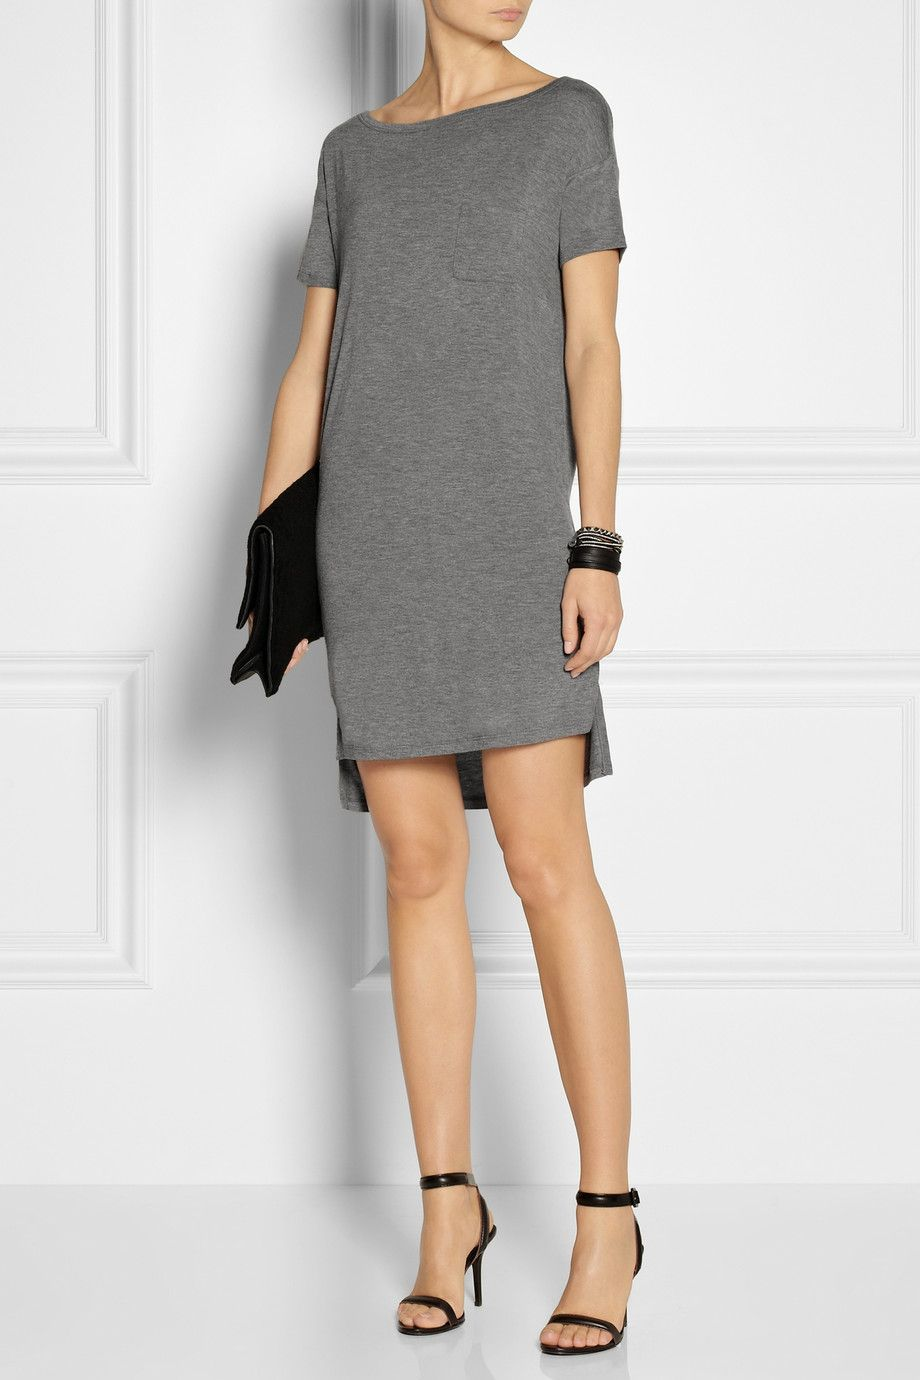 T By Alexander Wang Jersey T Shirt Dress Net A Porter My